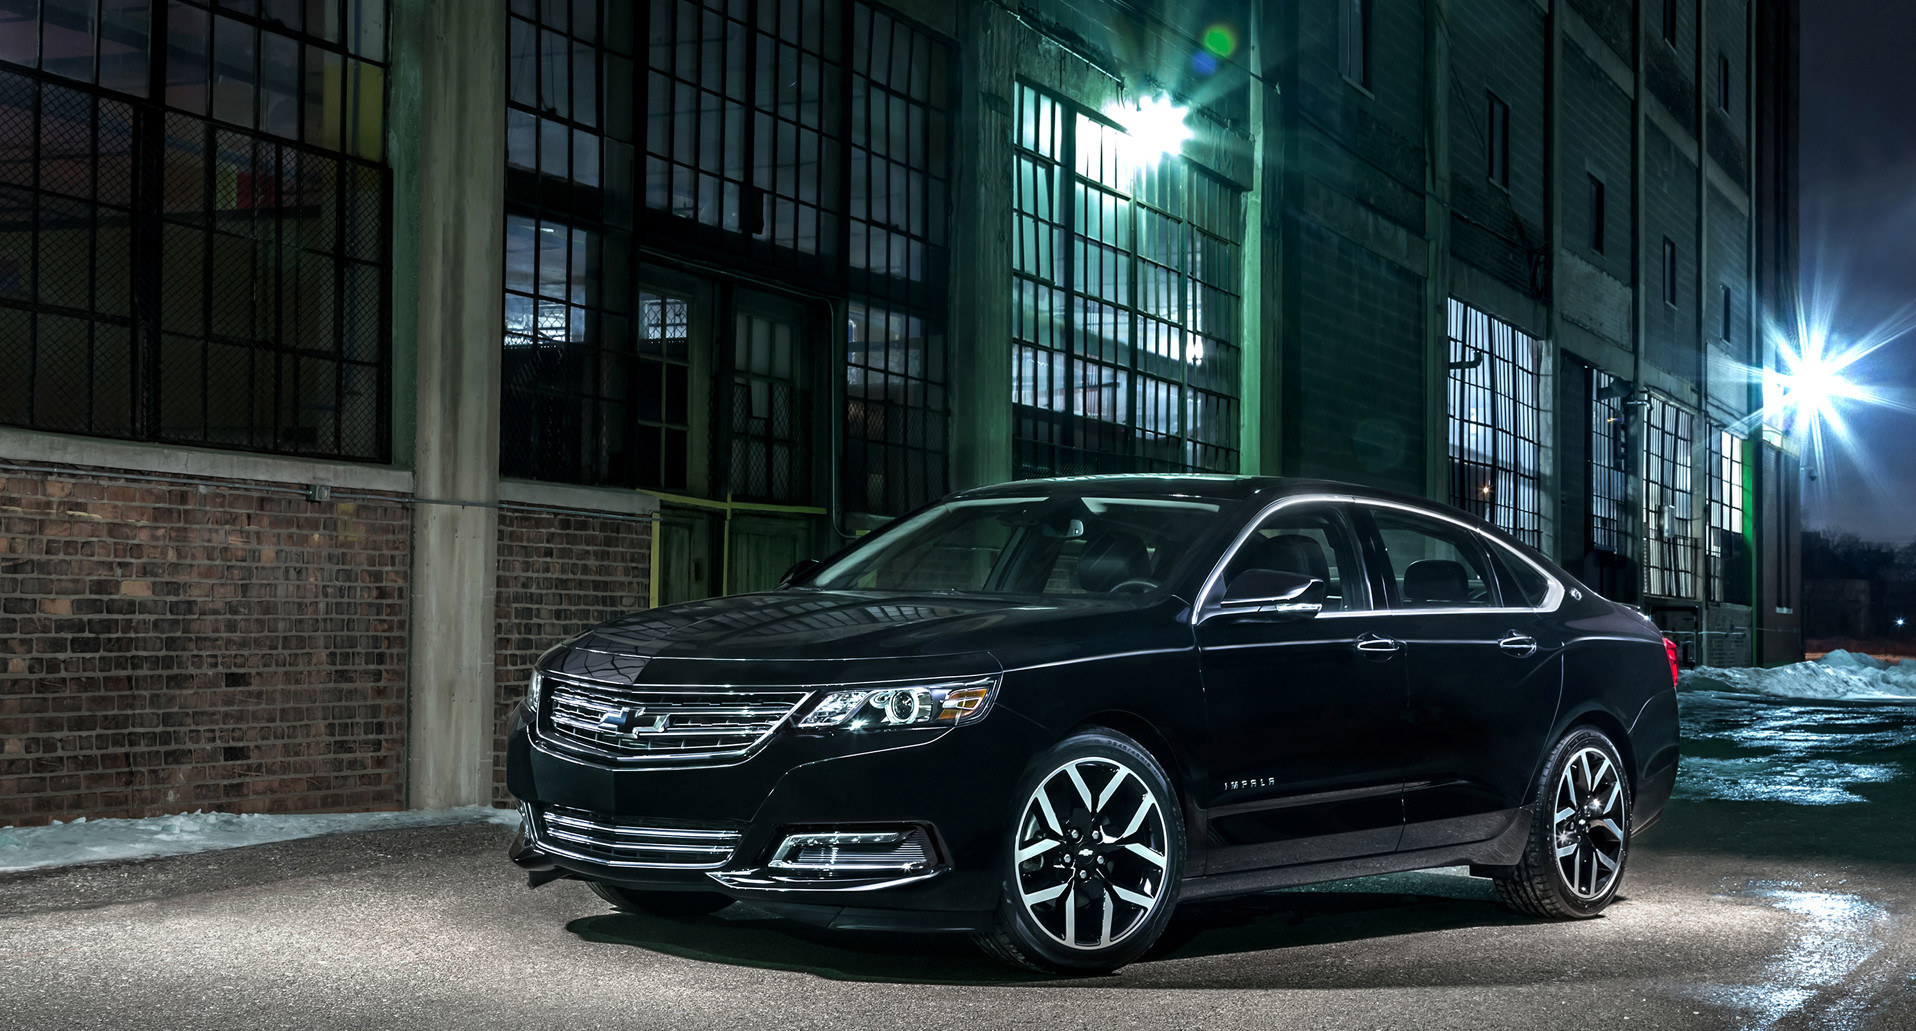 2016 Chevrolet Impala Midnight Edition Preview (View 10 of 11)